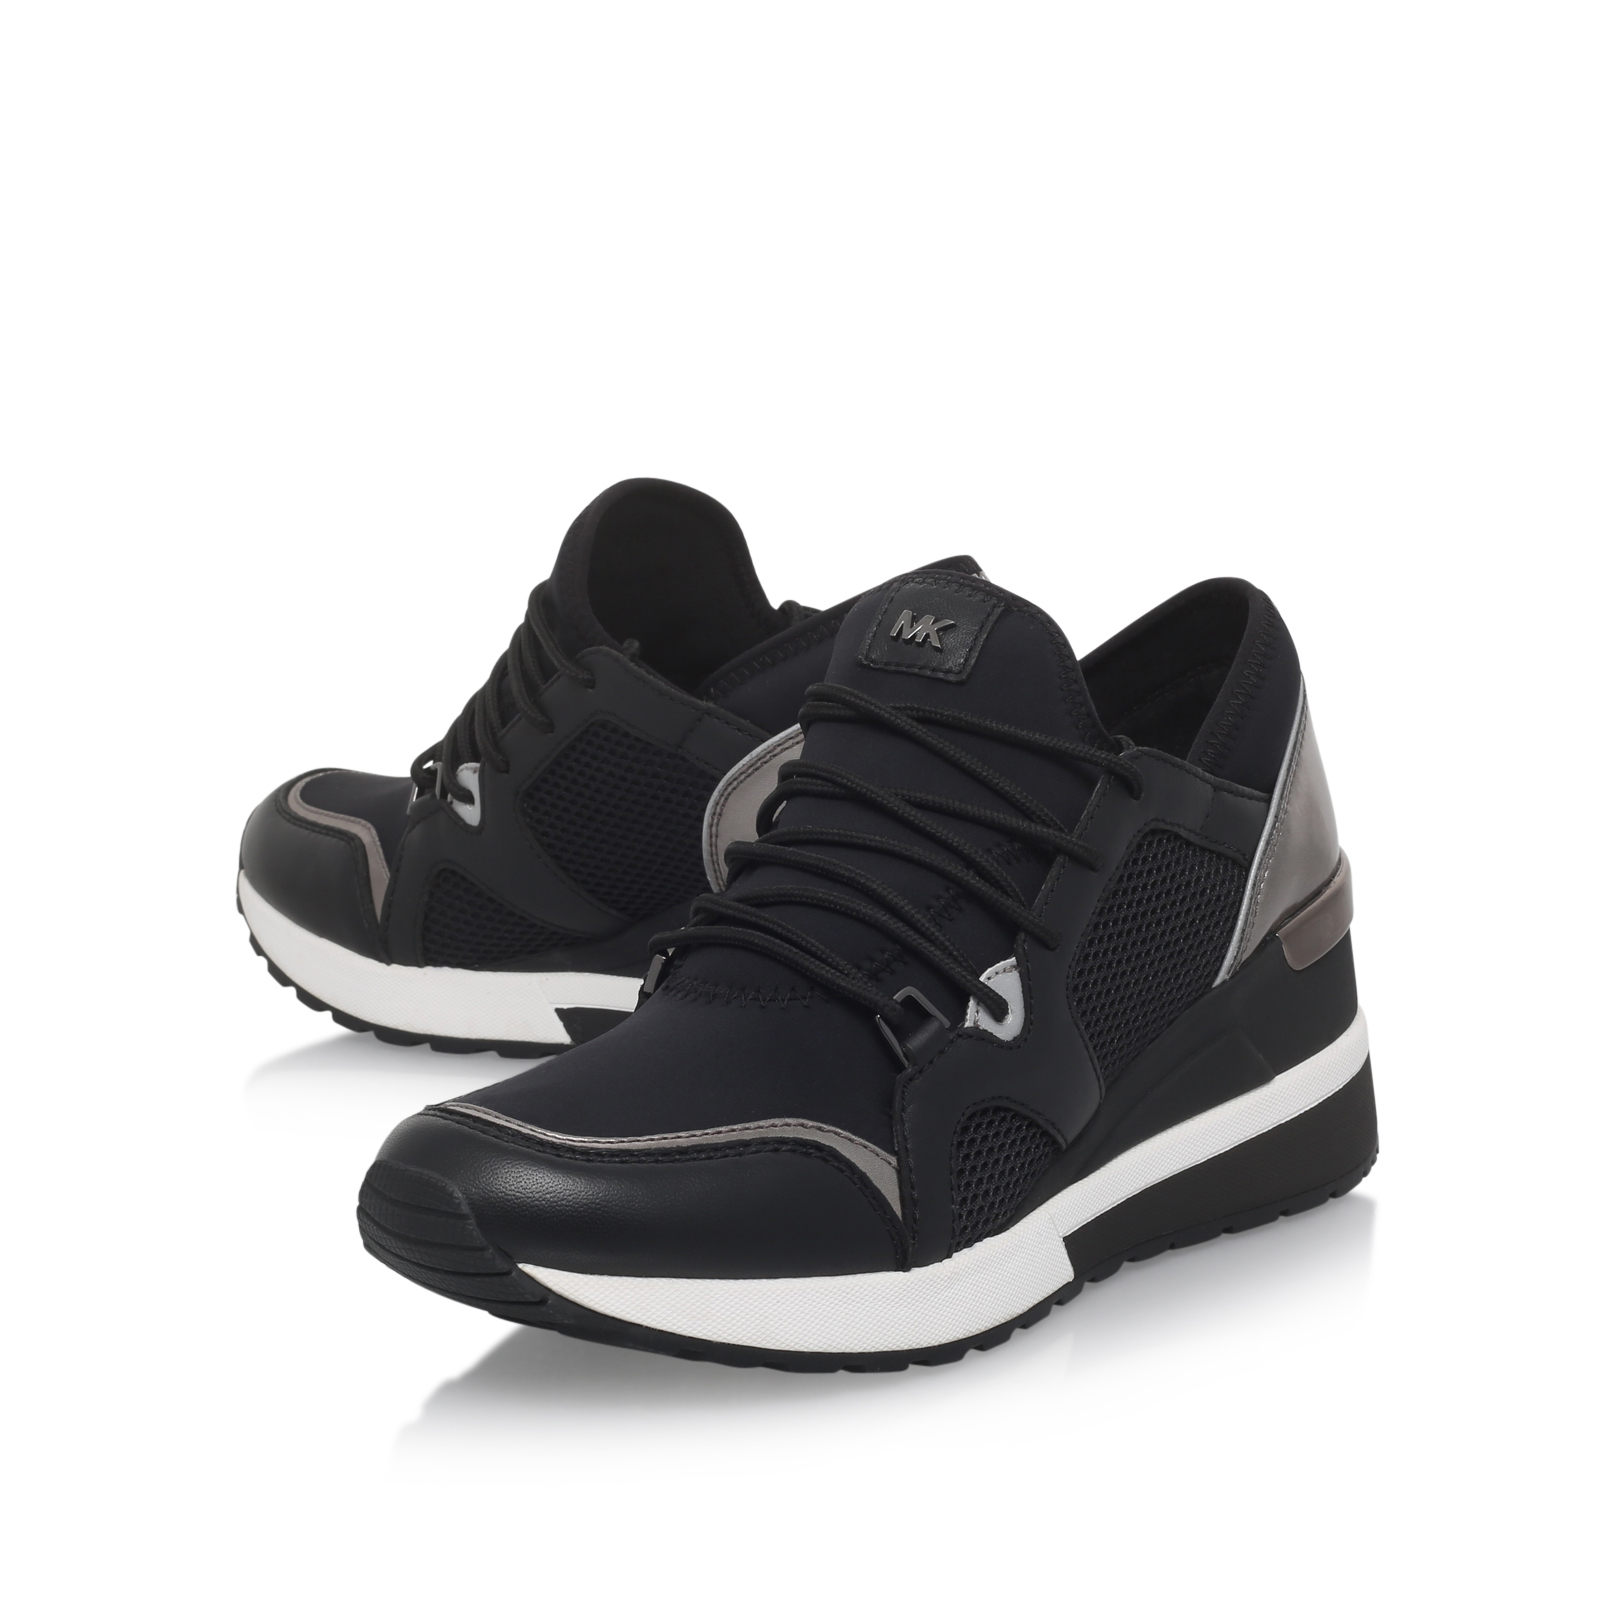 MICHAEL yY6whmTXxZ SCOUT TRAINER - Trainers - black 1ld6tk